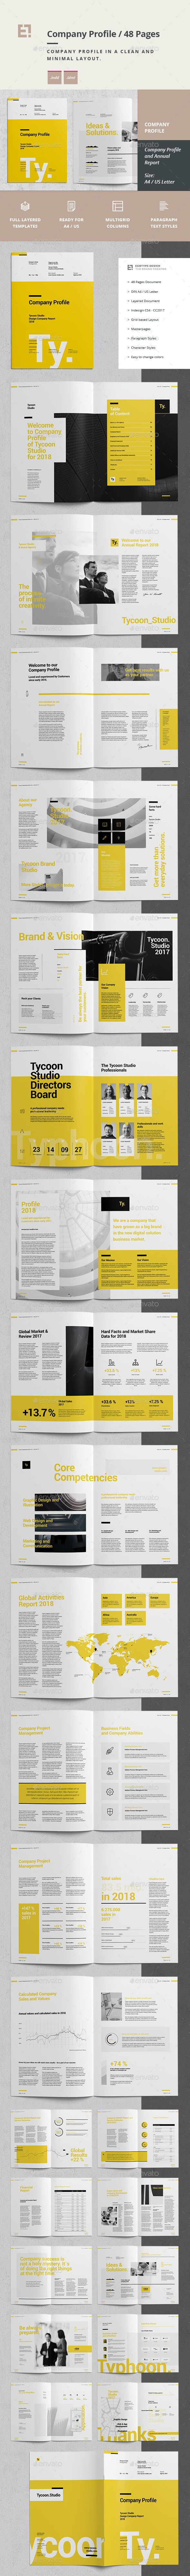 Annual Report Brochure Template InDesign INDD - 48 Custom Pages, A4 and US Letter Size